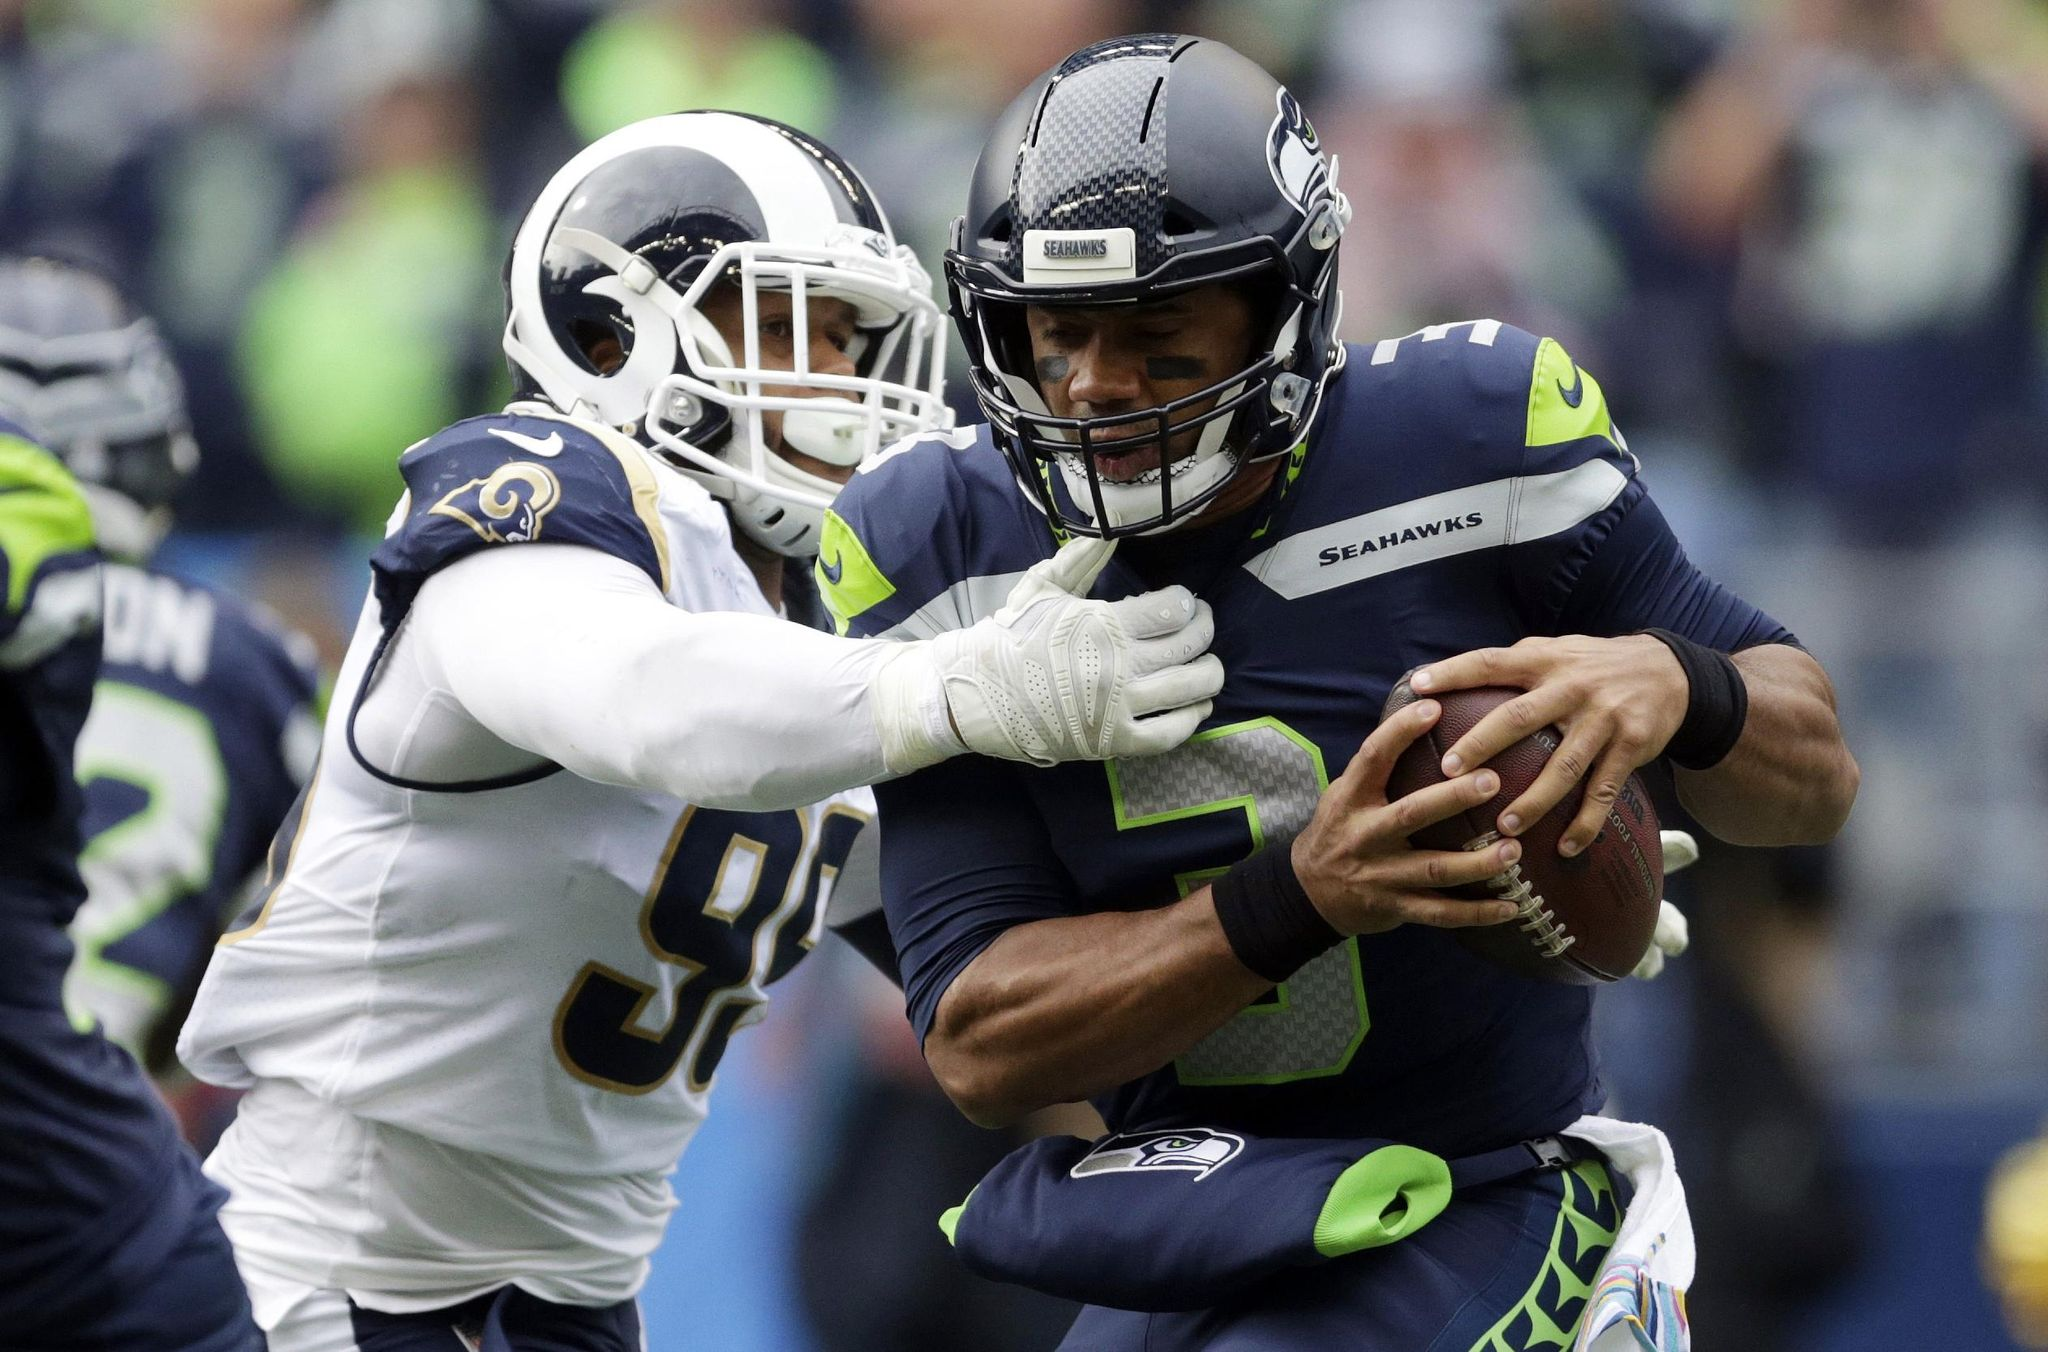 Rams eager to rebound from 1st loss, sweep Seahawks series